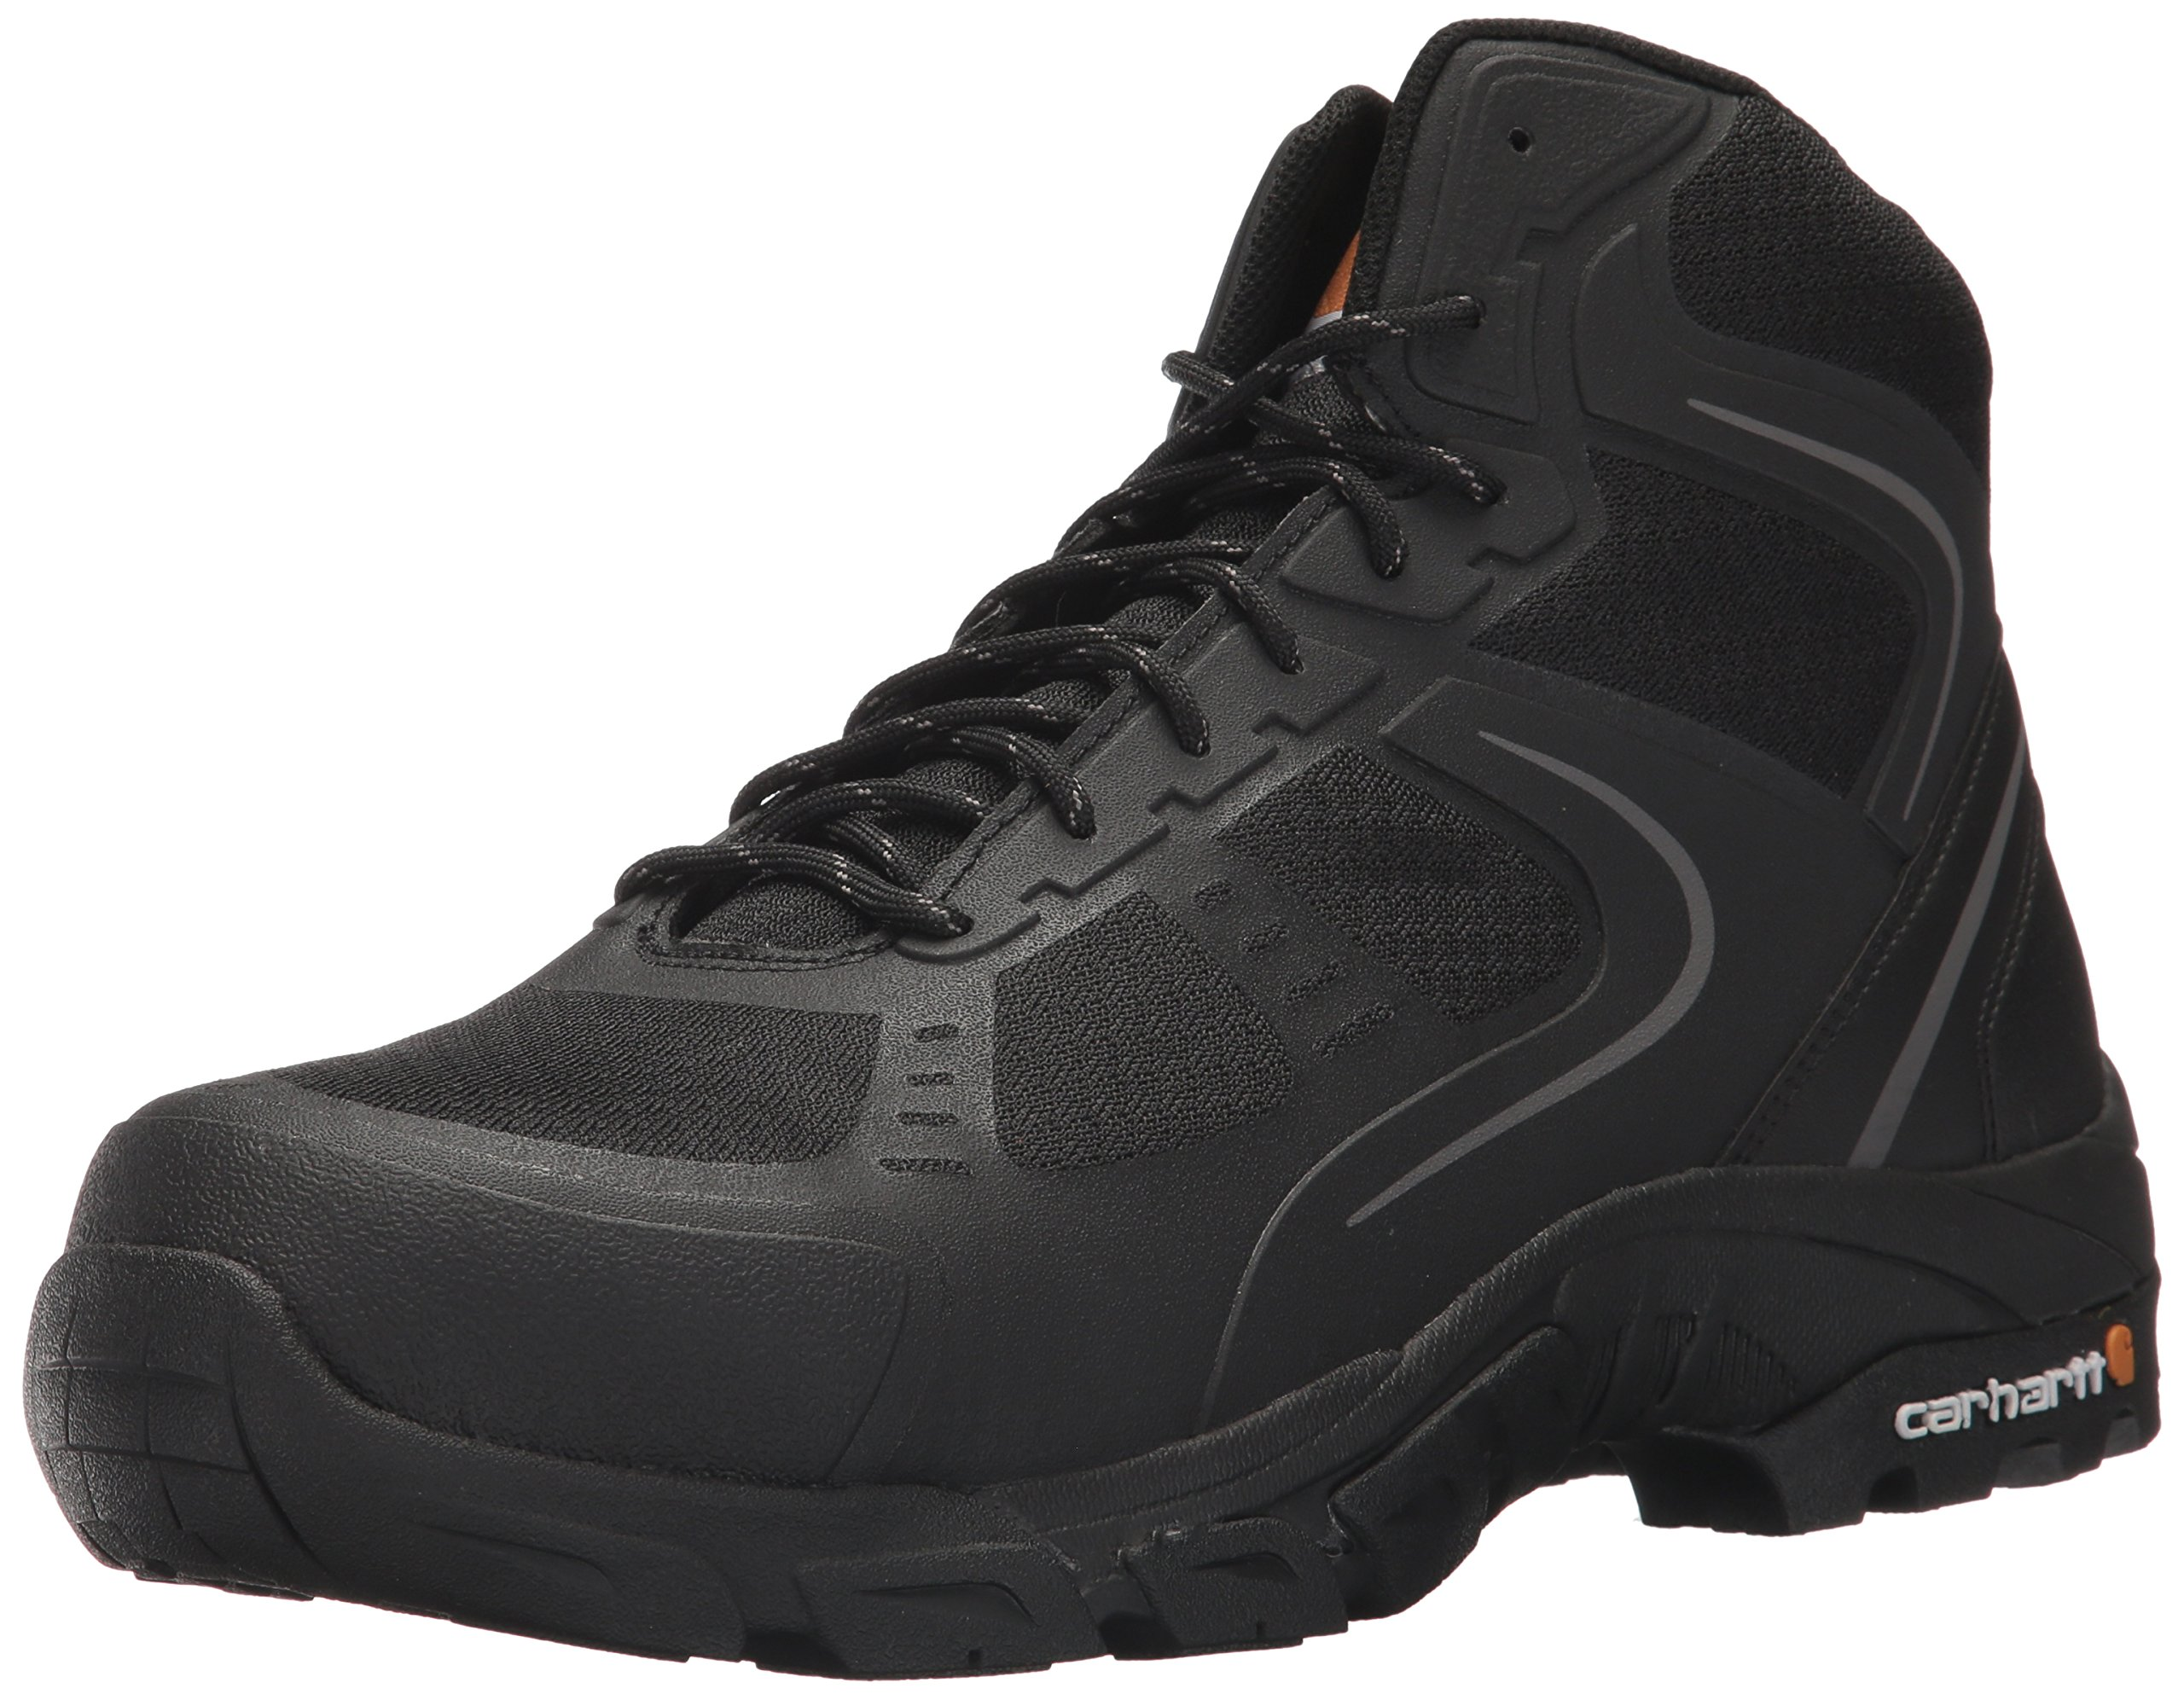 Carhartt Men's Lightweight Hiker 6-Inch Black FastDry Technology- Steel Toe - CMH4251